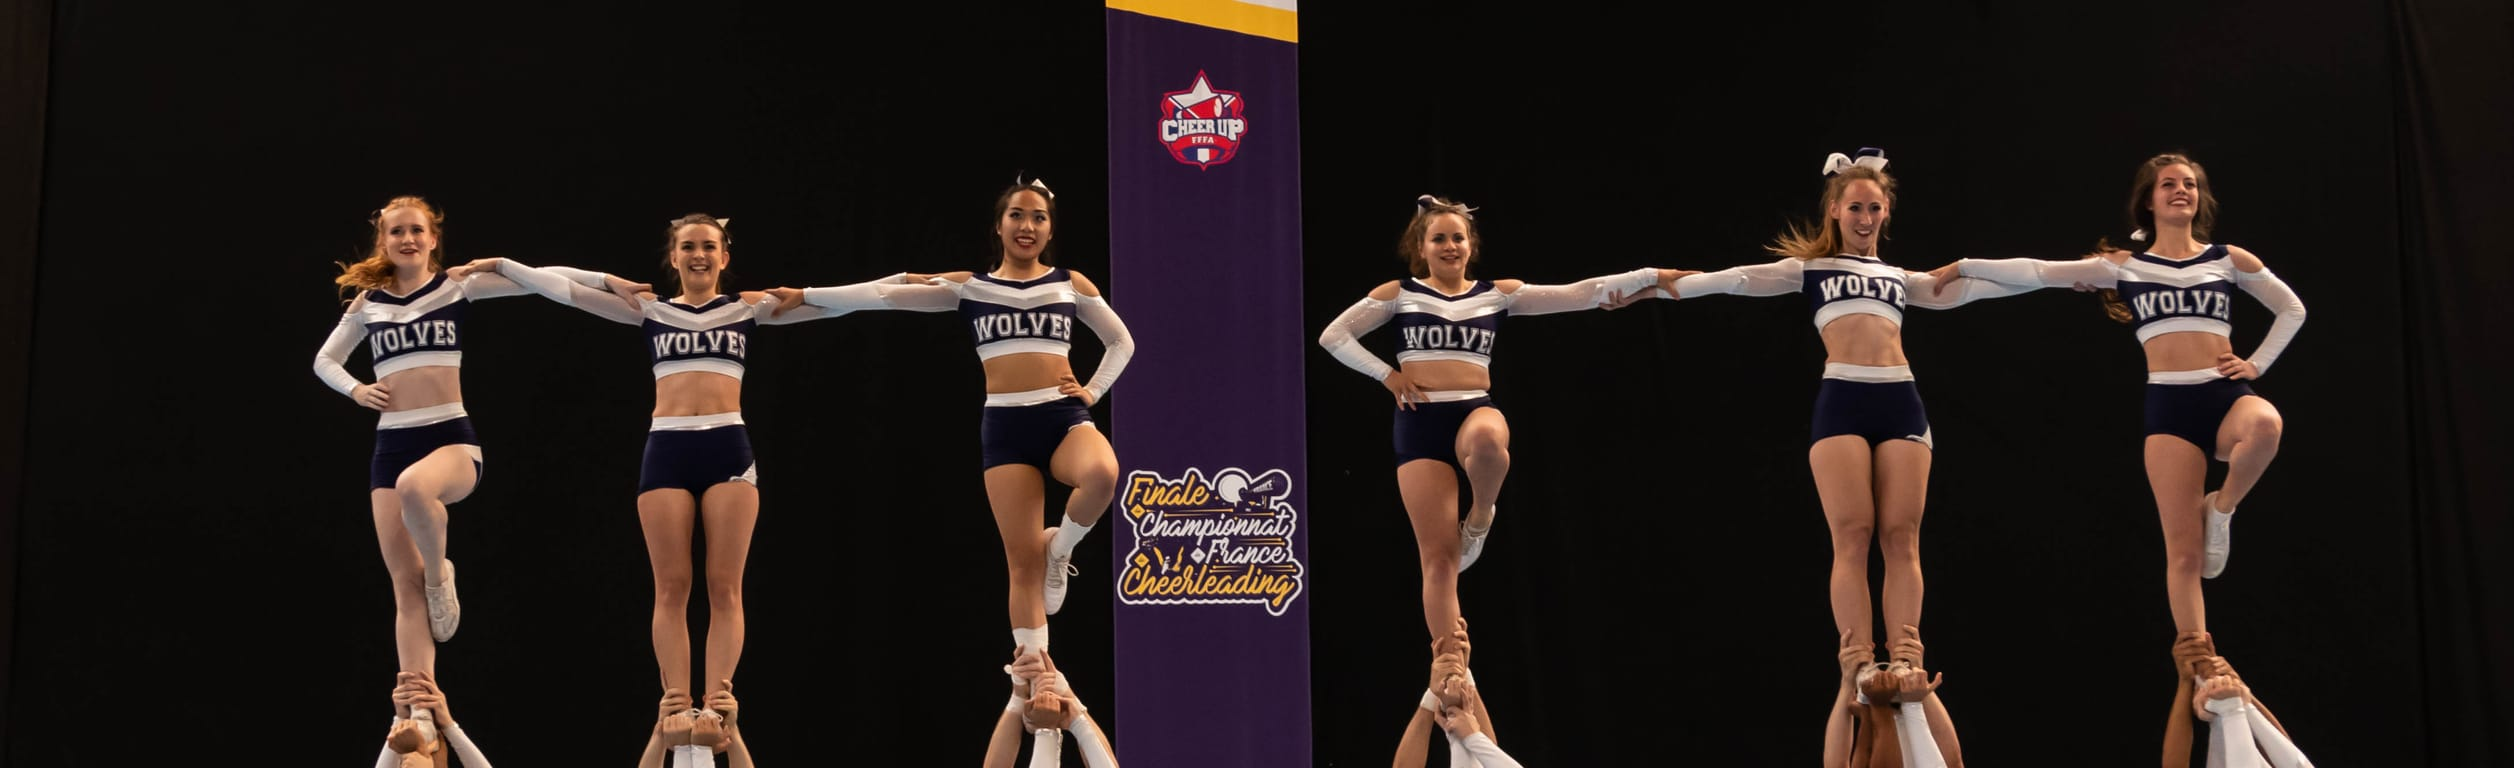 Wolves Toulouse Cheerleading